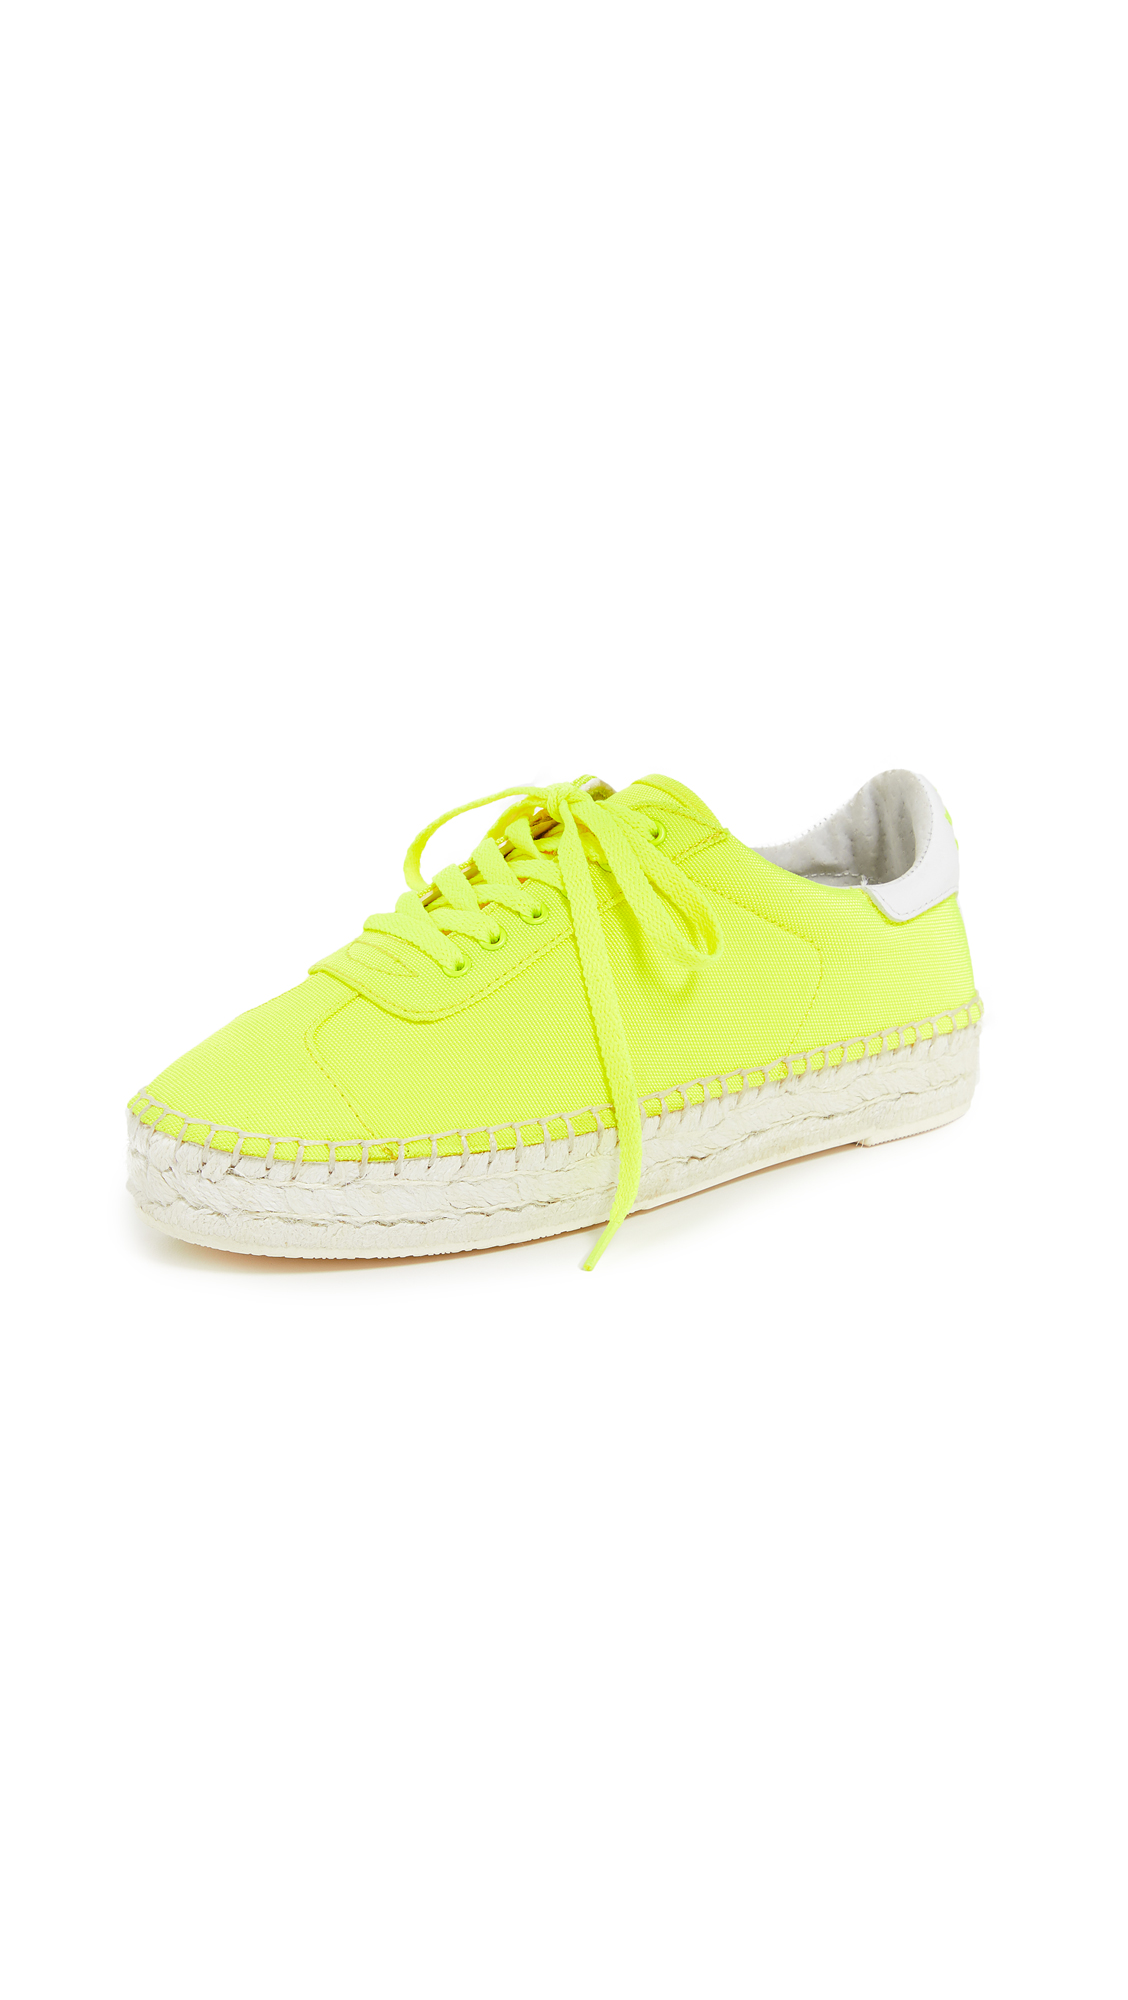 KENDALL + KYLIE James Espadrille Sneakers - Yellow